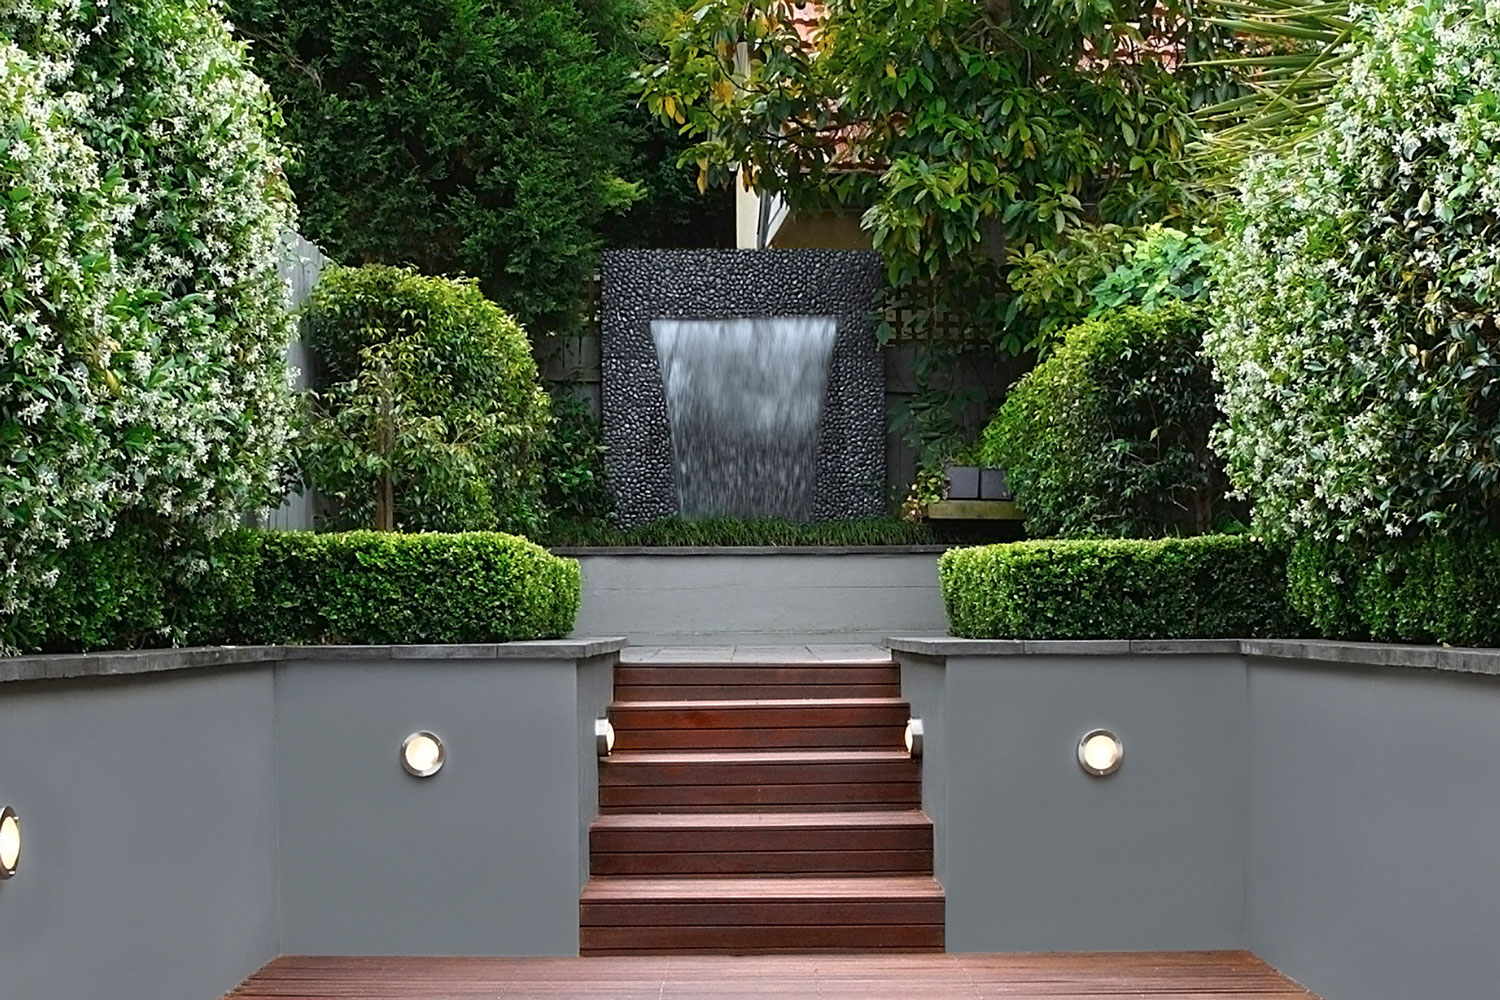 8 water feature ideas to transform your outdoor garden